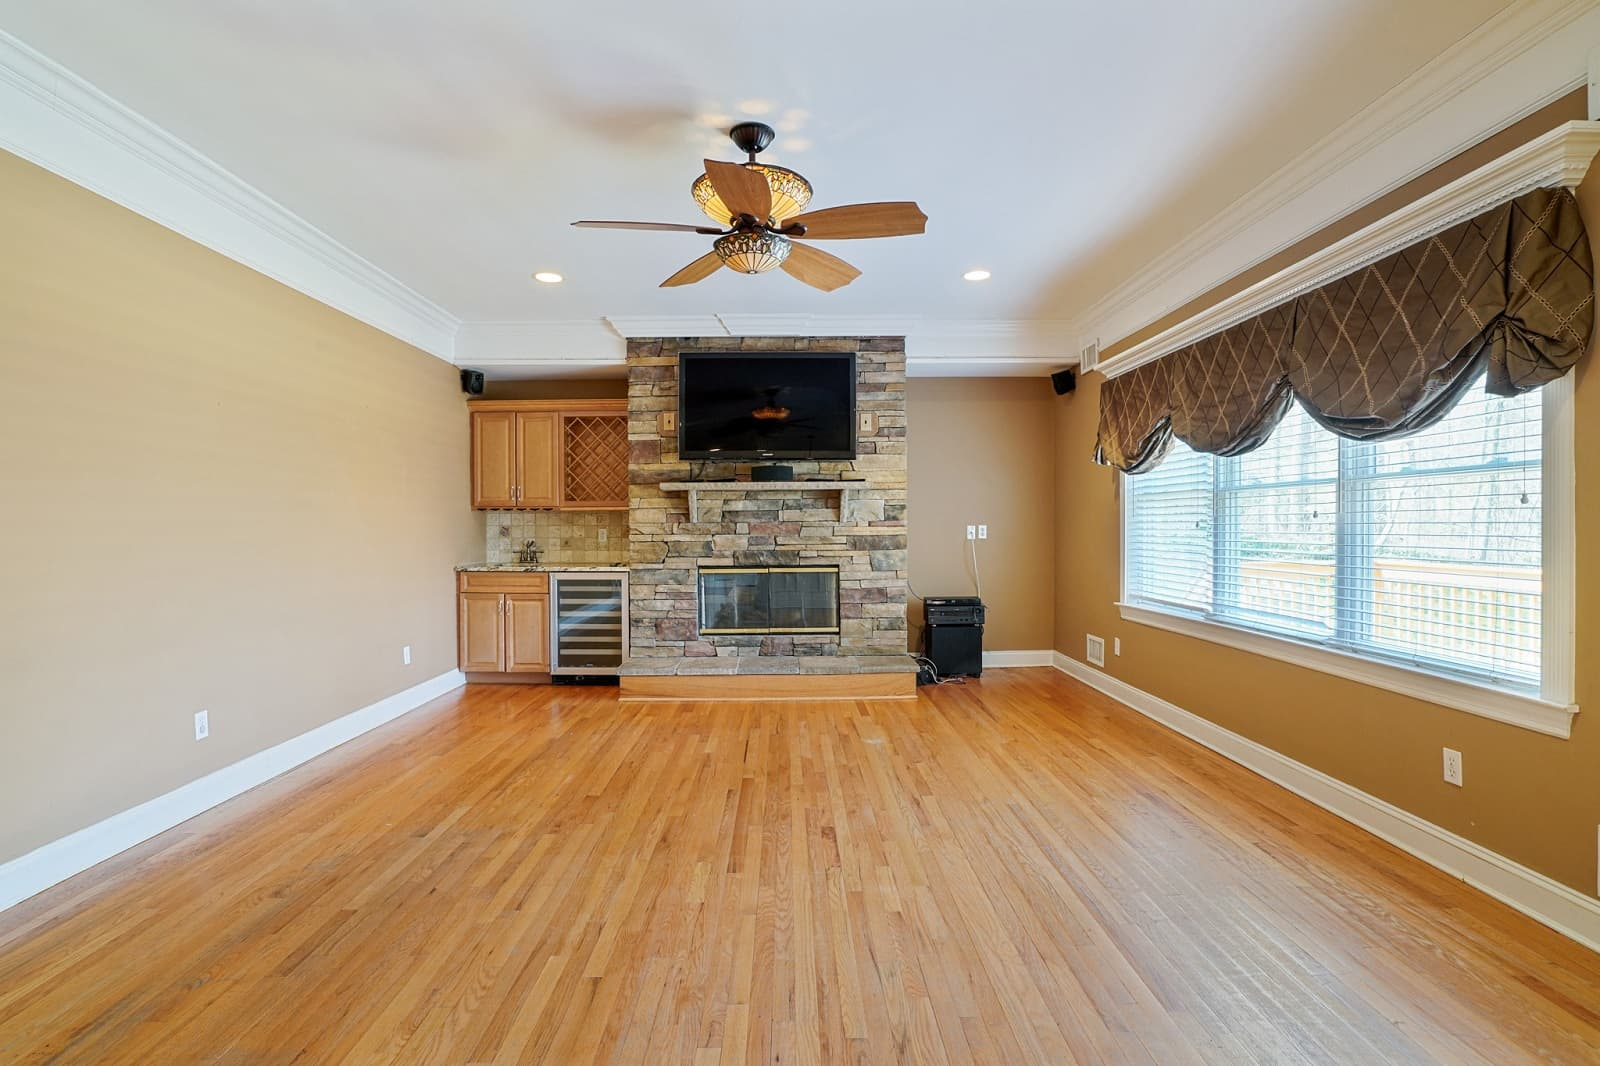 Real Estate Photography in Huntington - NY - USA - Living Area View